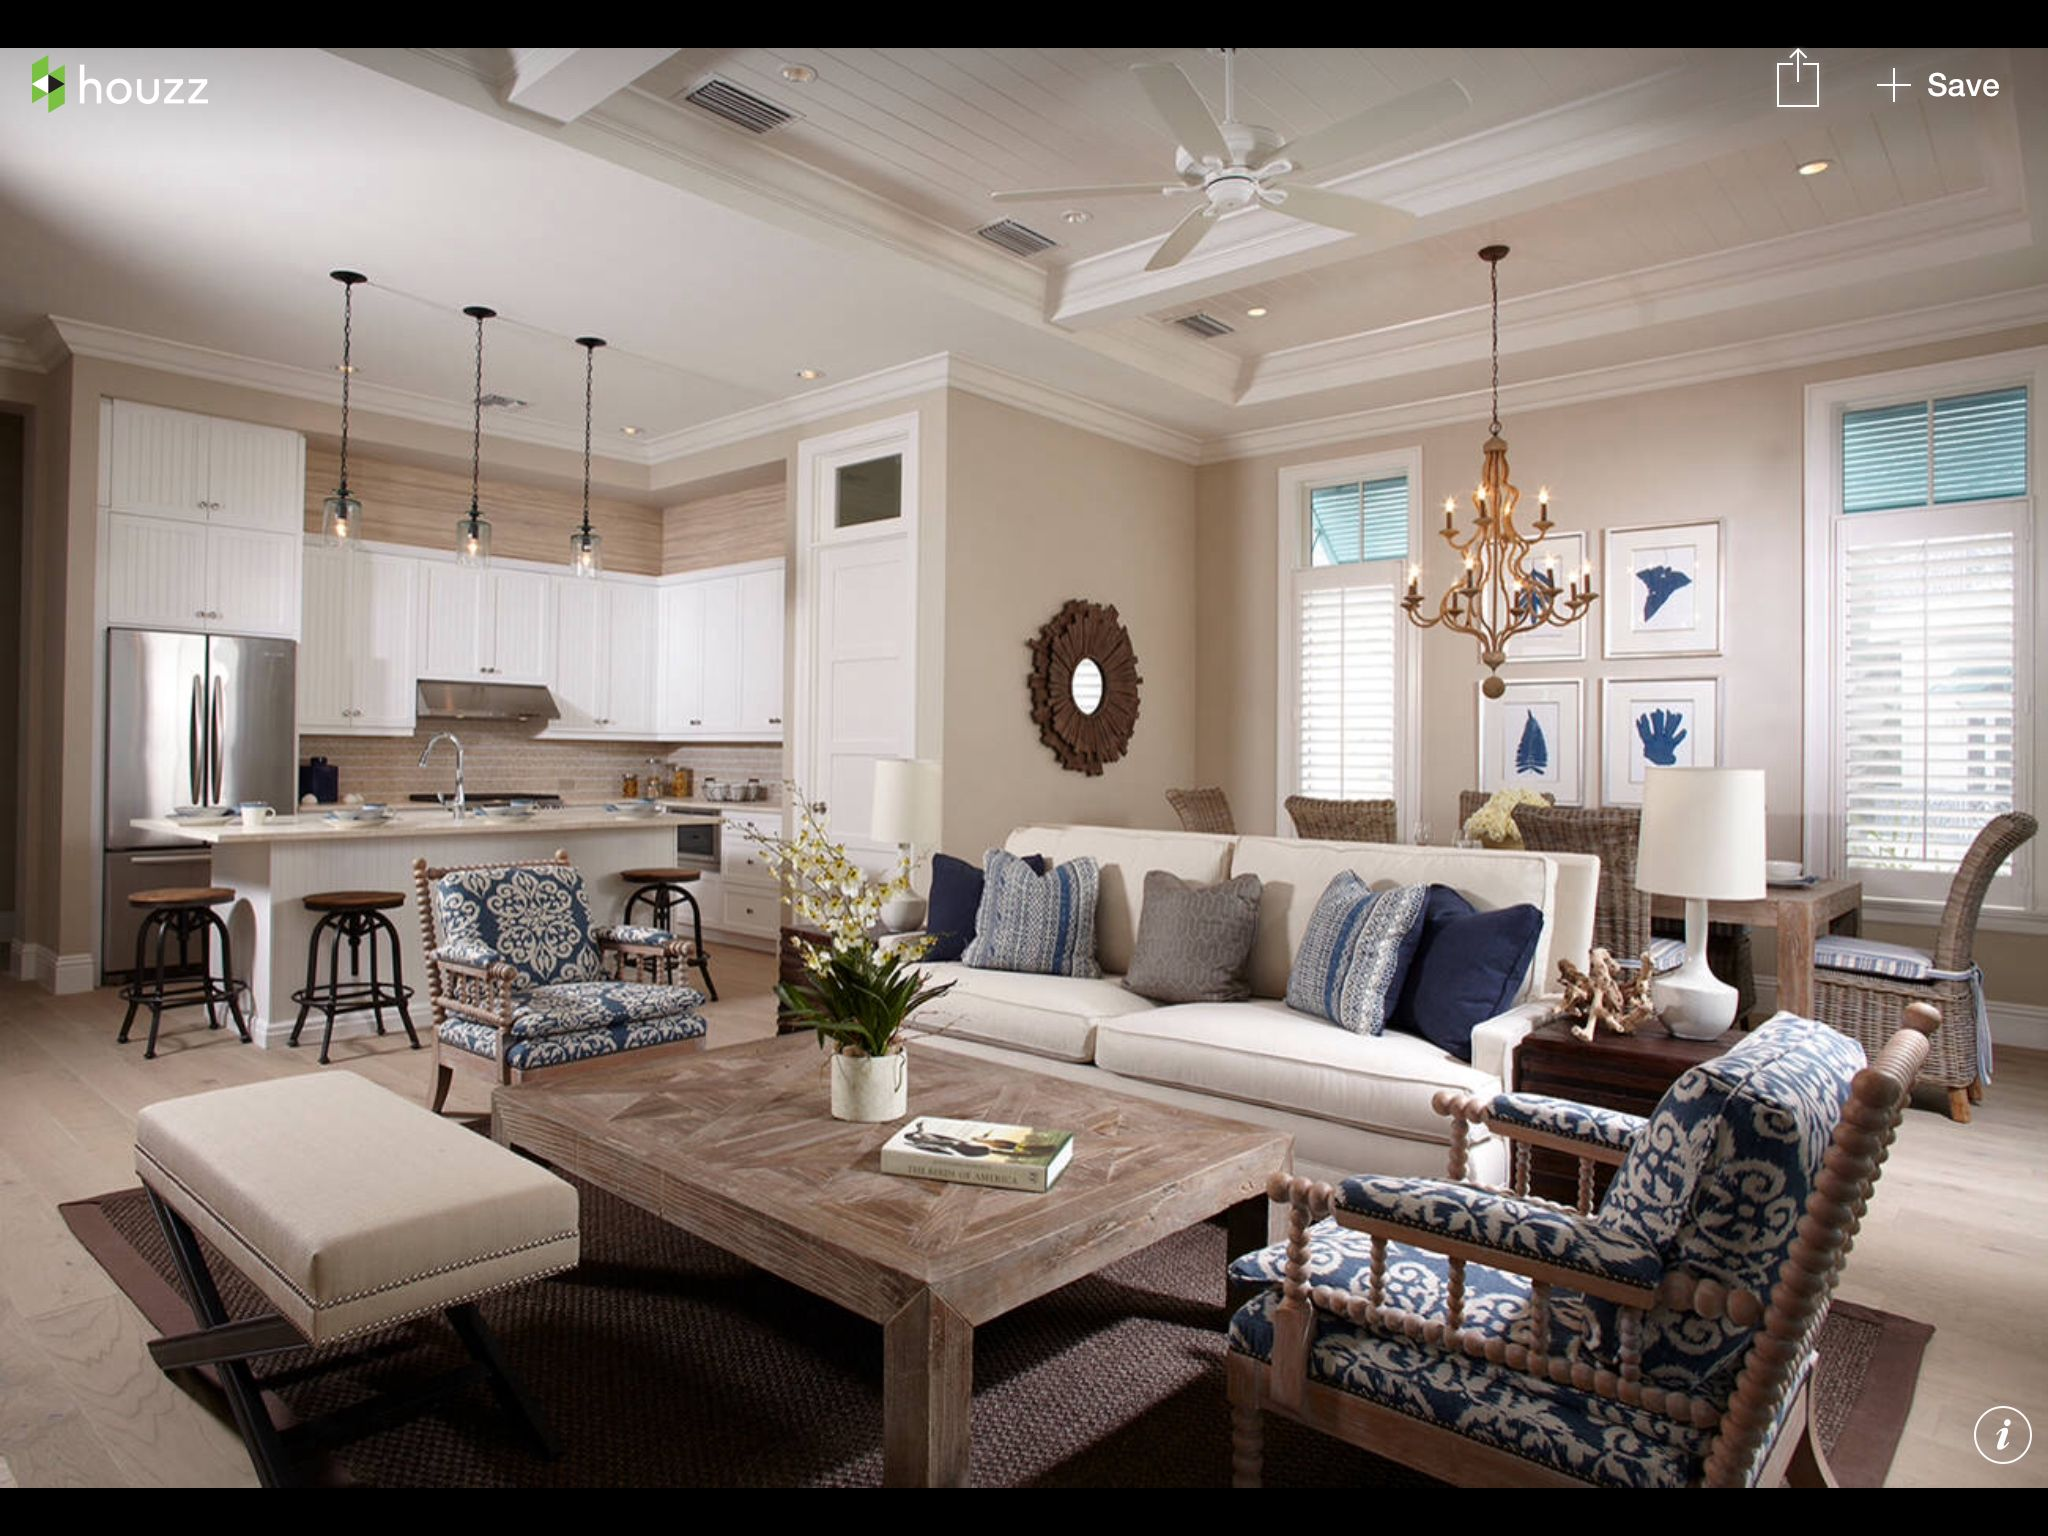 Living Room Design Houzz Amusing Living Room Inspiration From Houzz  House Inspiration  Pinterest Design Decoration